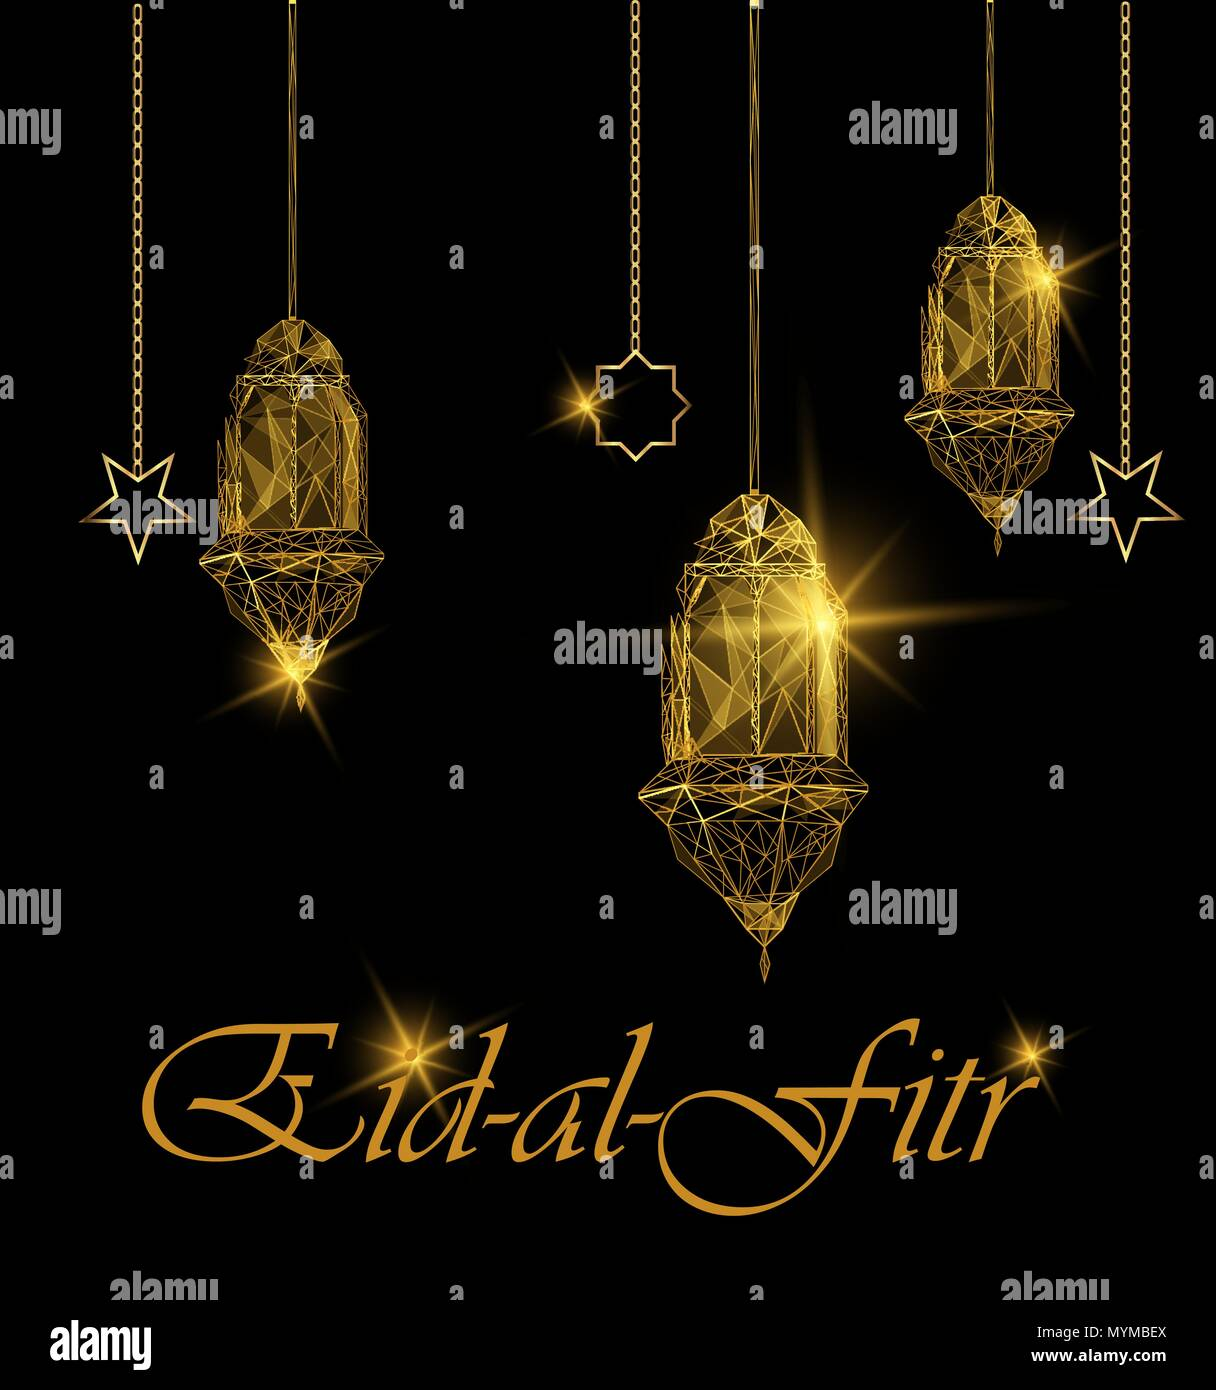 Eid al fitr bright greeting card traditional golden arabic lanterns eid al fitr bright greeting card traditional golden arabic lanterns polygonal art on blue background usable for eid mubarak stock vector illustrat m4hsunfo